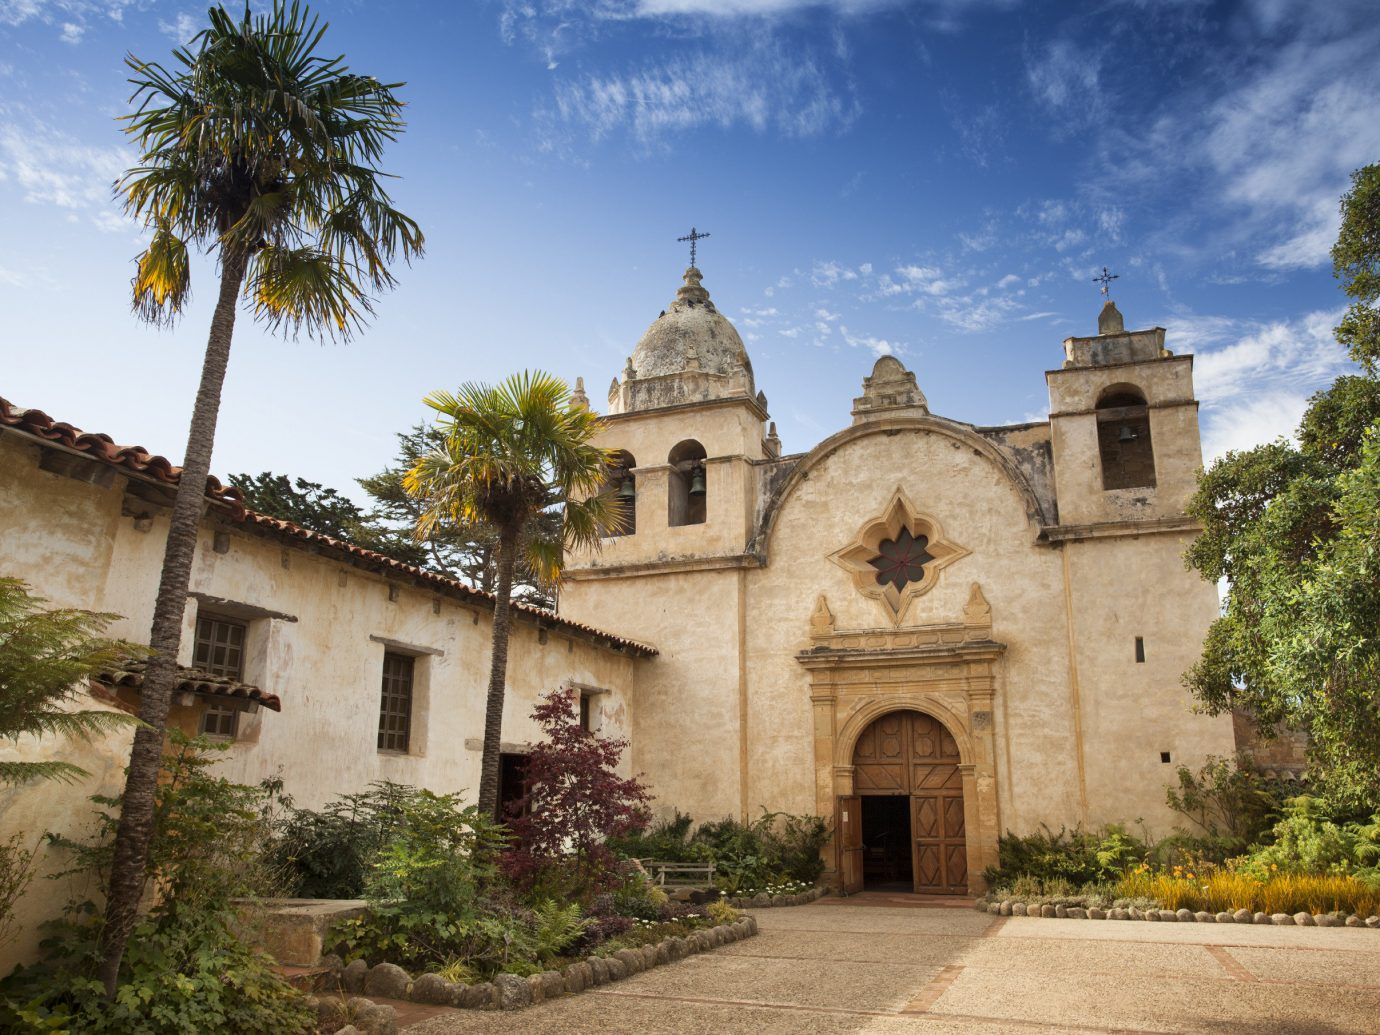 Trip Ideas outdoor tree sky historic site building stone house old estate place of worship monastery Church spanish missions in california Village ancient history Villa